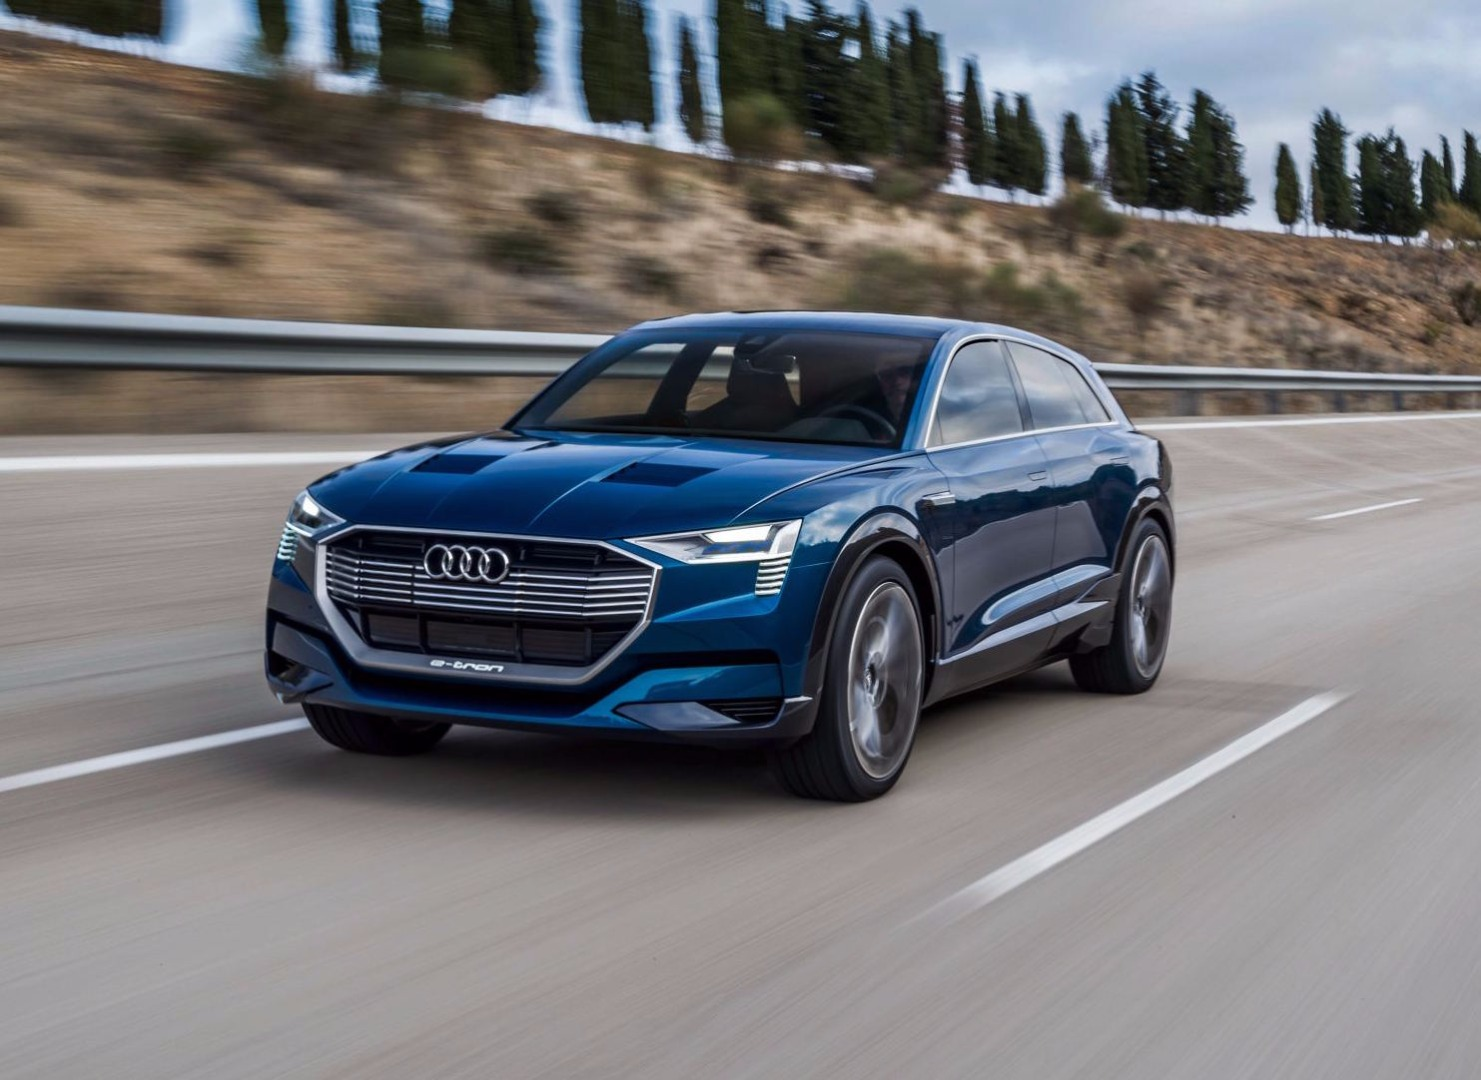 news audi e tron suv confirmed as first production ev model. Black Bedroom Furniture Sets. Home Design Ideas